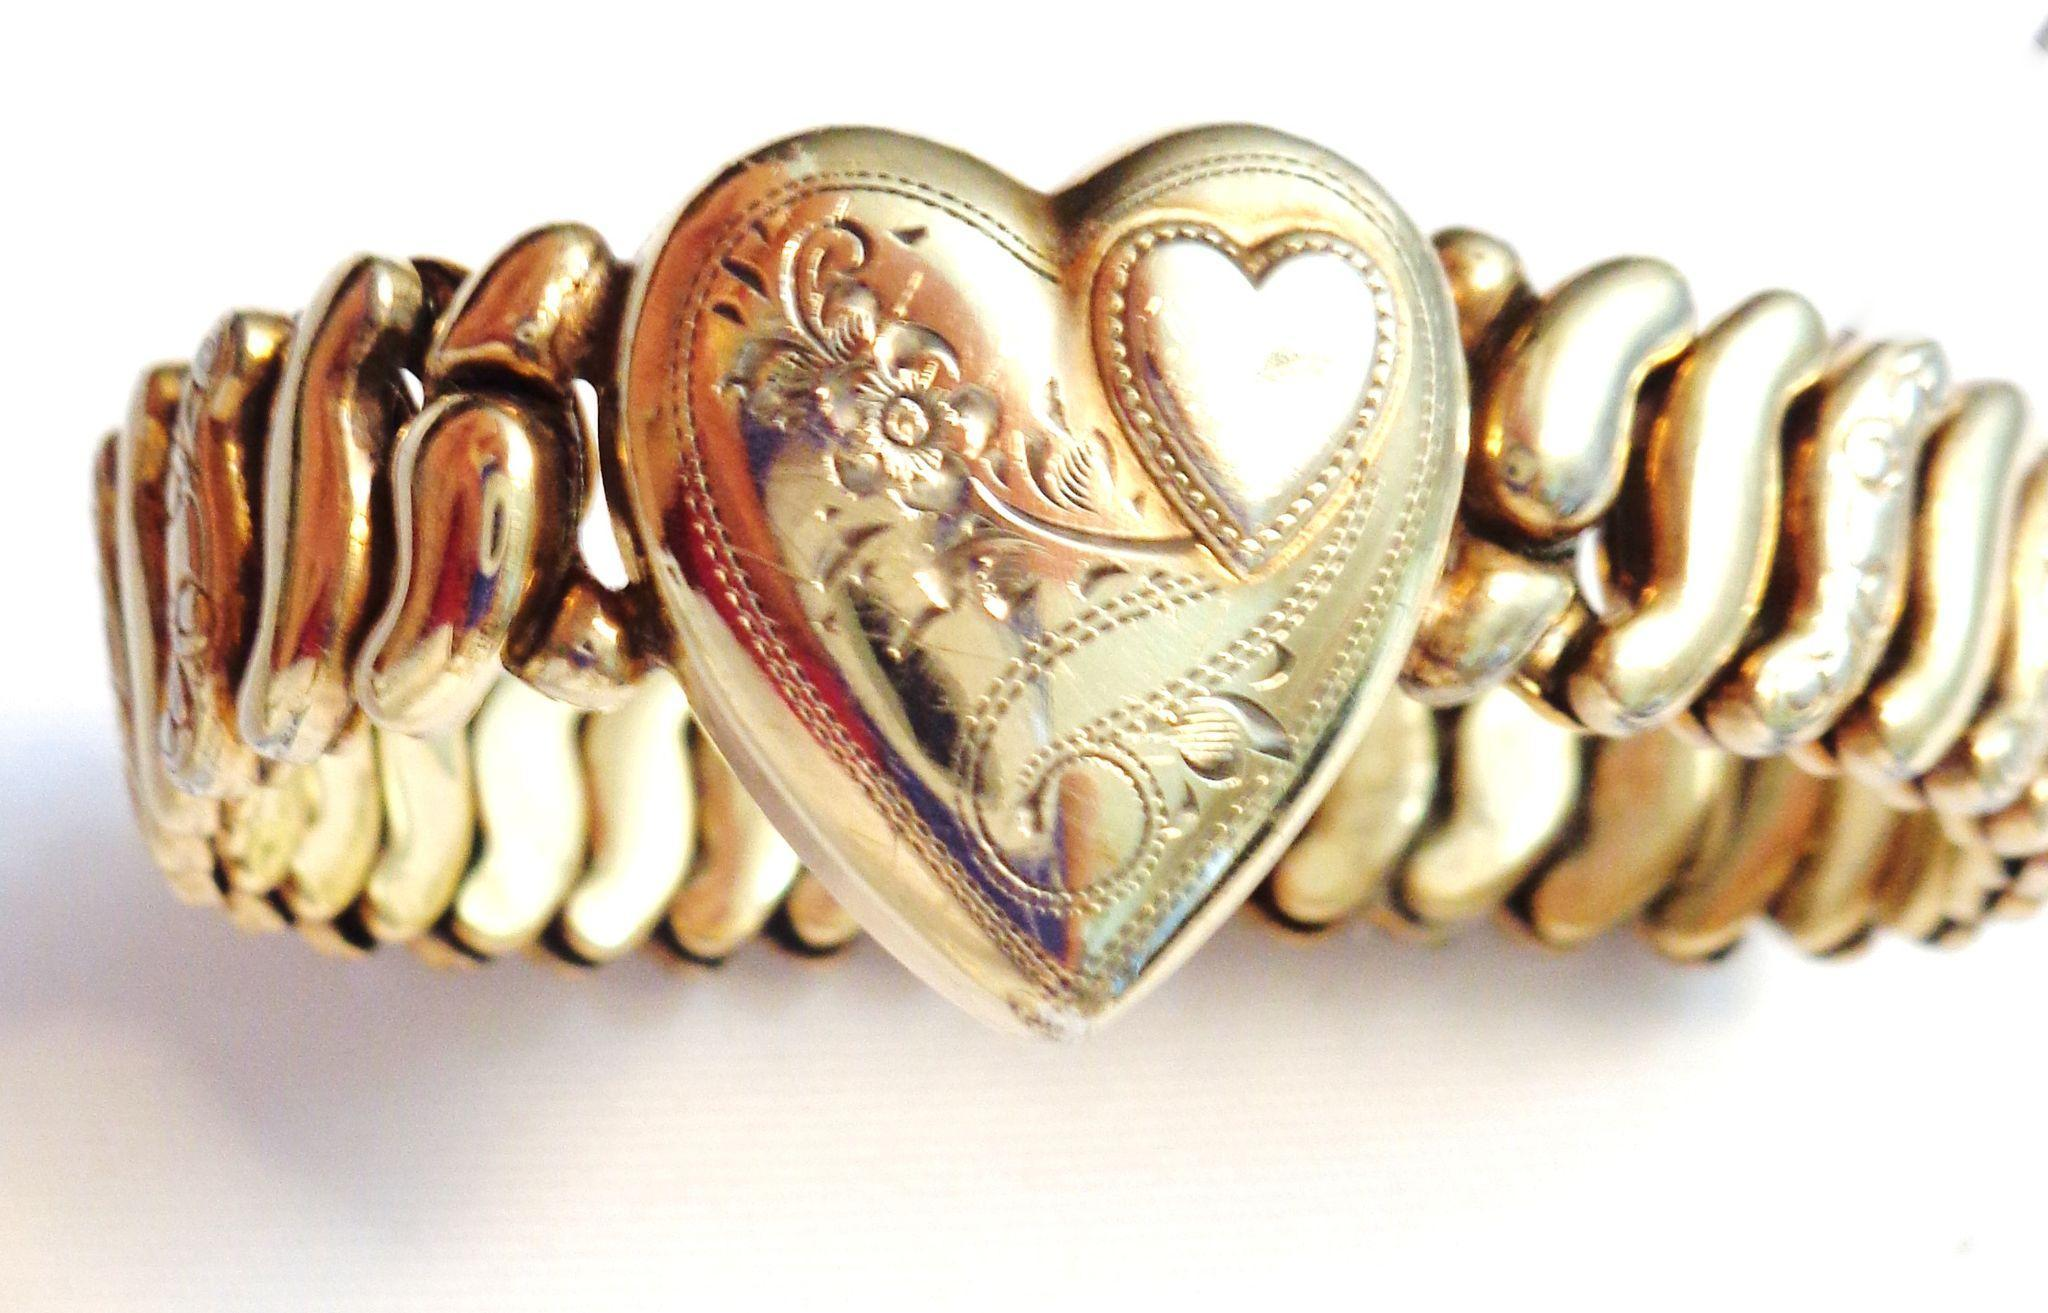 Vintage Bright Gold Plated Sweetheart Expansion Bracelet